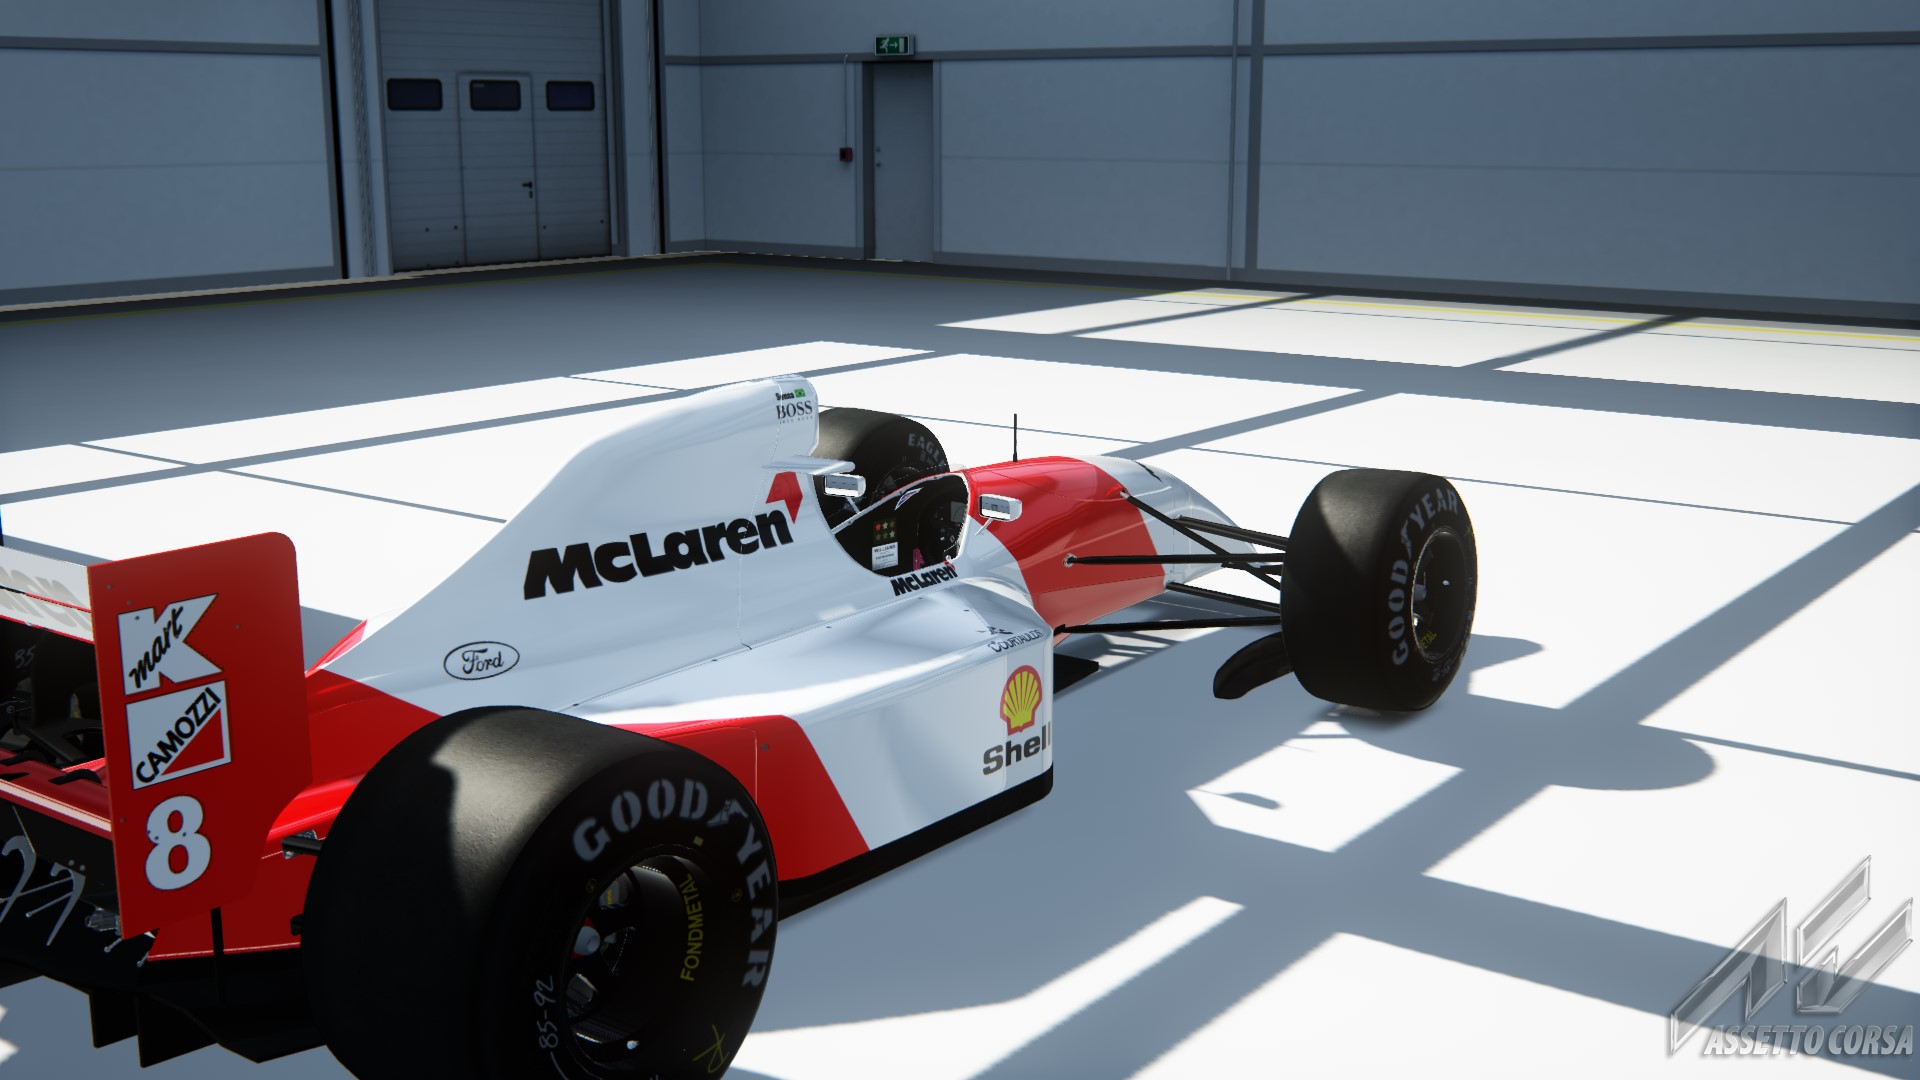 Showroom_asr_1991_williams_fw14_26-5-2016-21-6-16.jpg